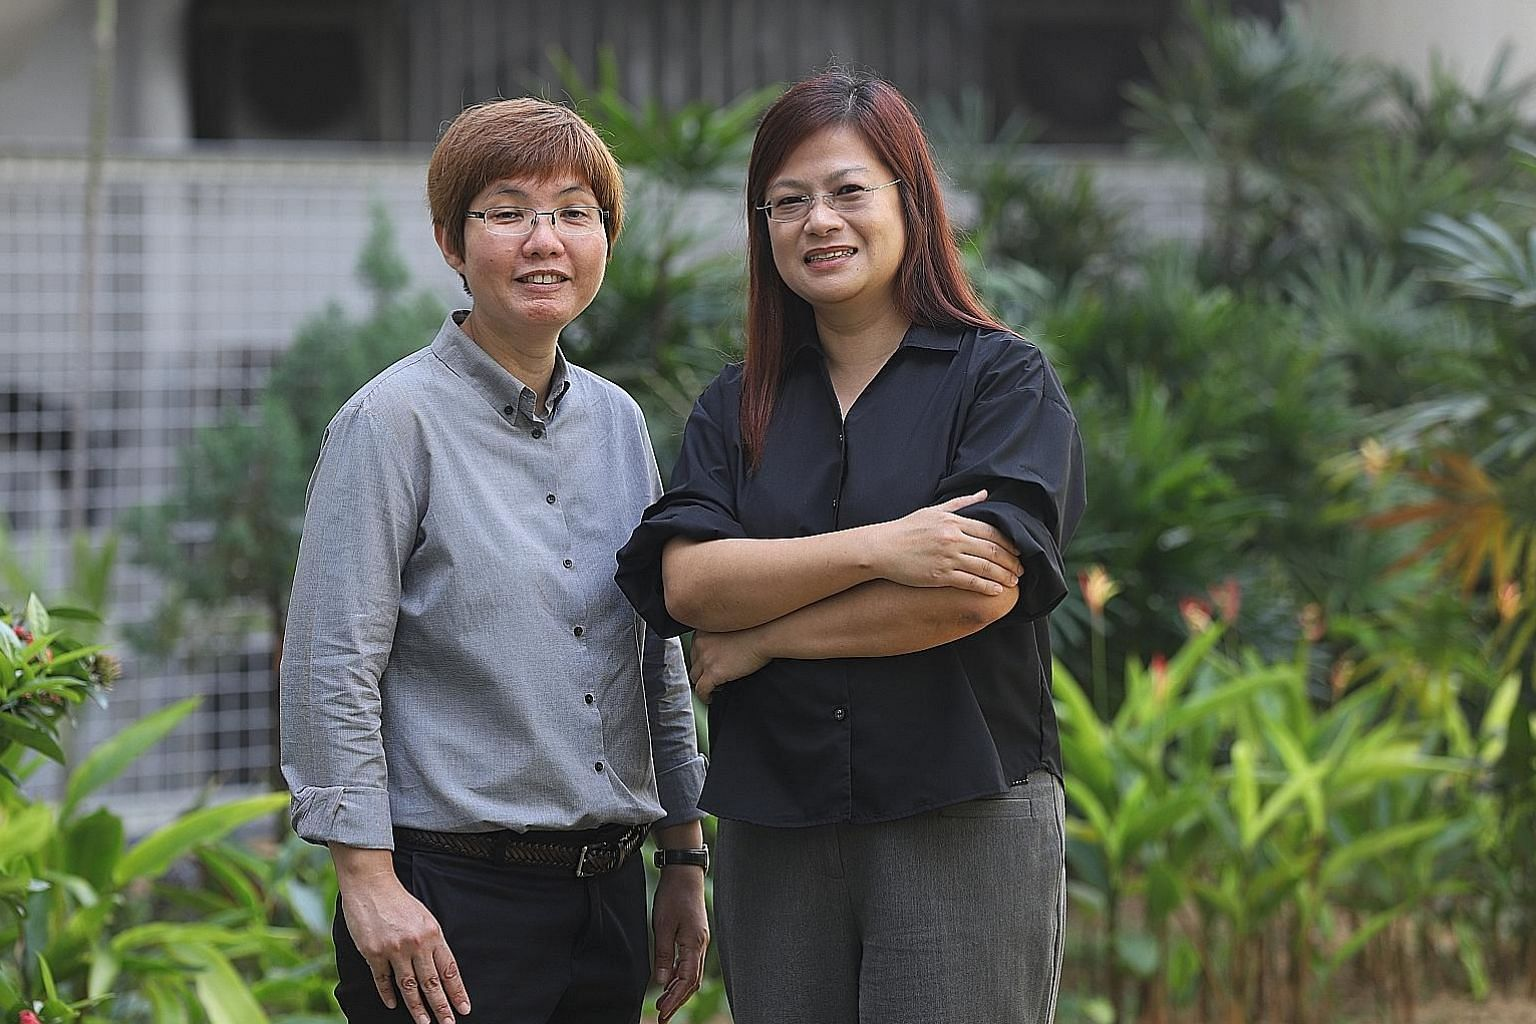 Ms Tian Ching Ching (right) and Ms Julia Quek are among the social workers stationed at Bedok Police Division. Most of the more than 110 offenders who have been referred to them were arrested for crimes such as theft or for causing hurt, said Ms Tian